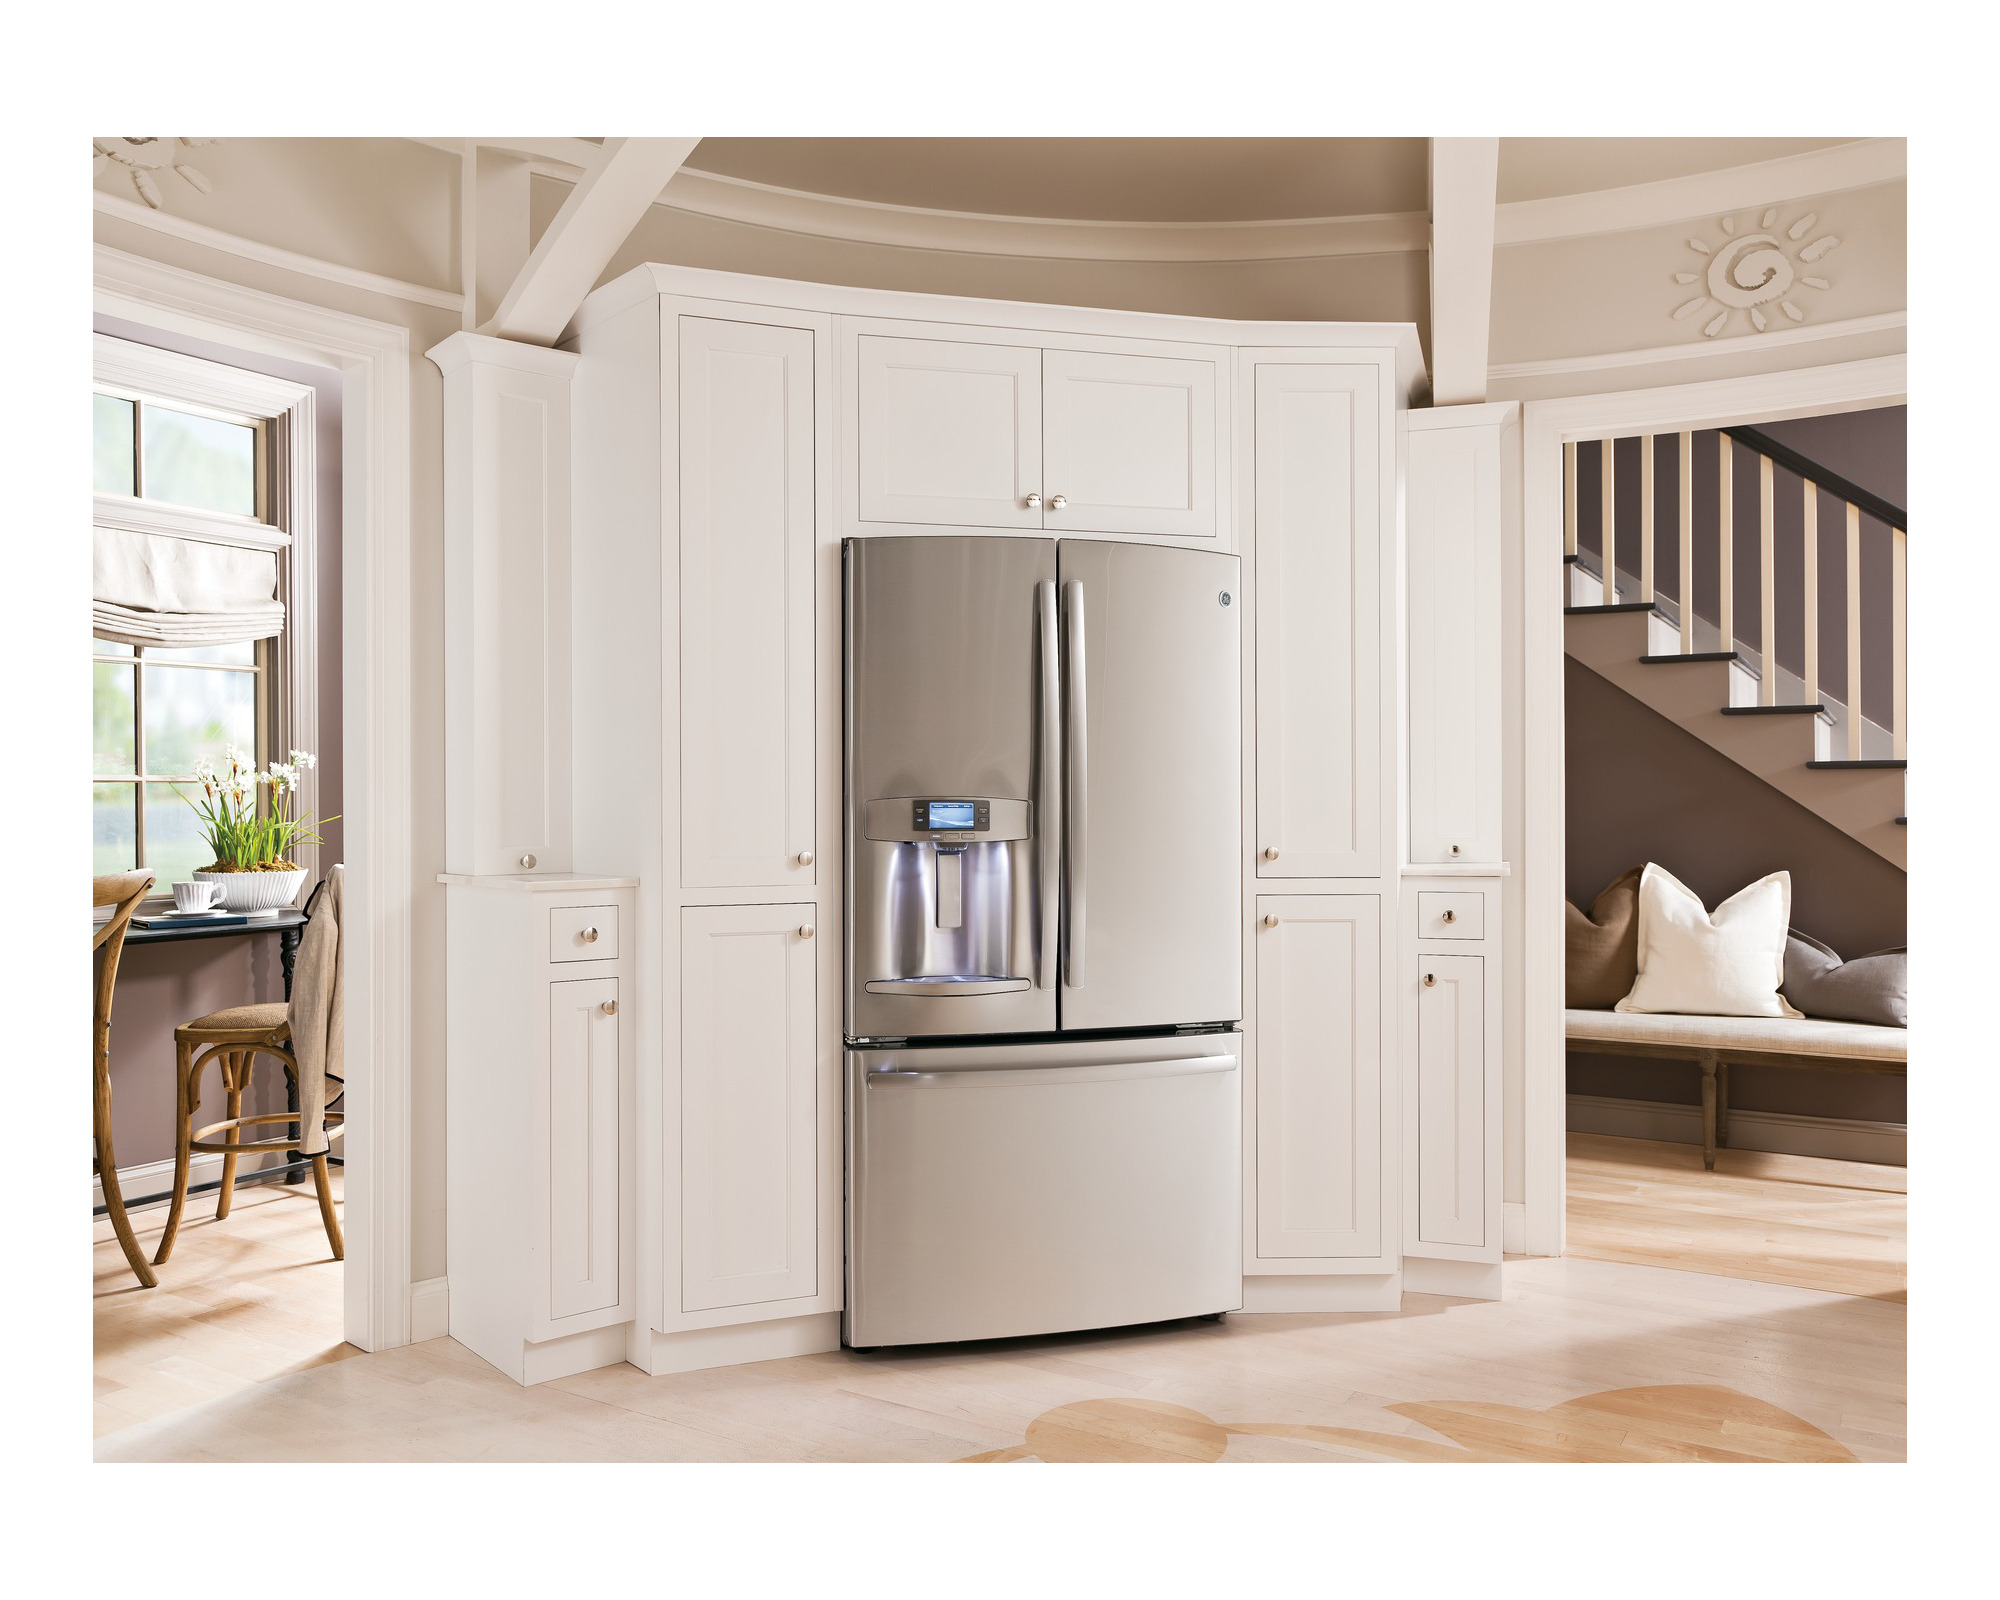 GE Profile PFH28PSHSS 28 cu. ft. French-Door Ice & Water Refrigerator - Stainless Steel